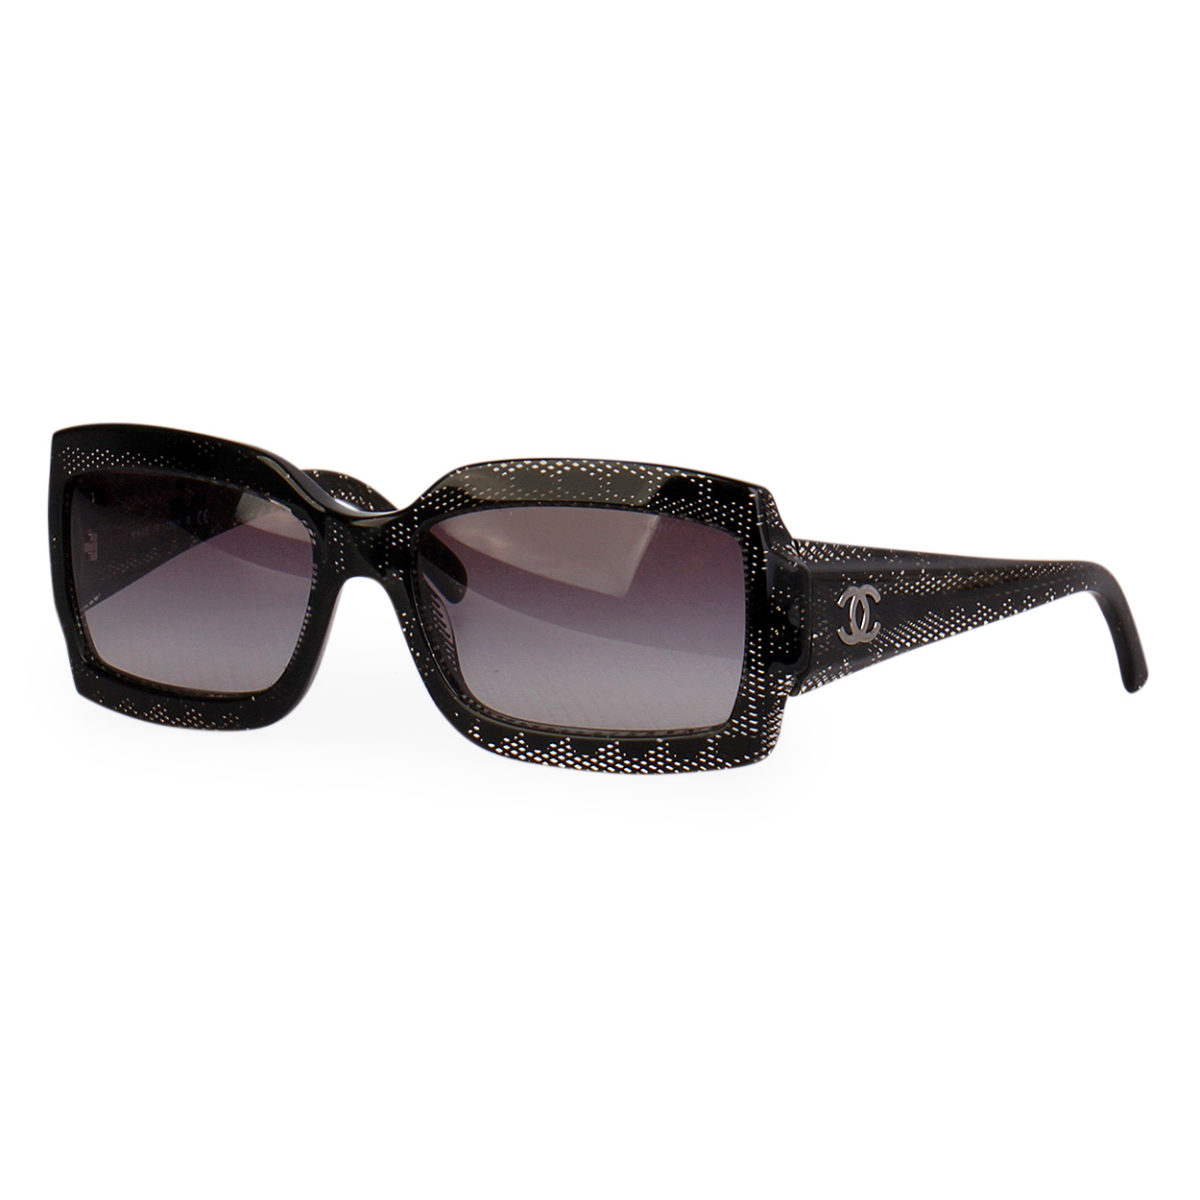 99932d4271ef CHANEL Rectangle Sunglasses 5161 Black | Luxity